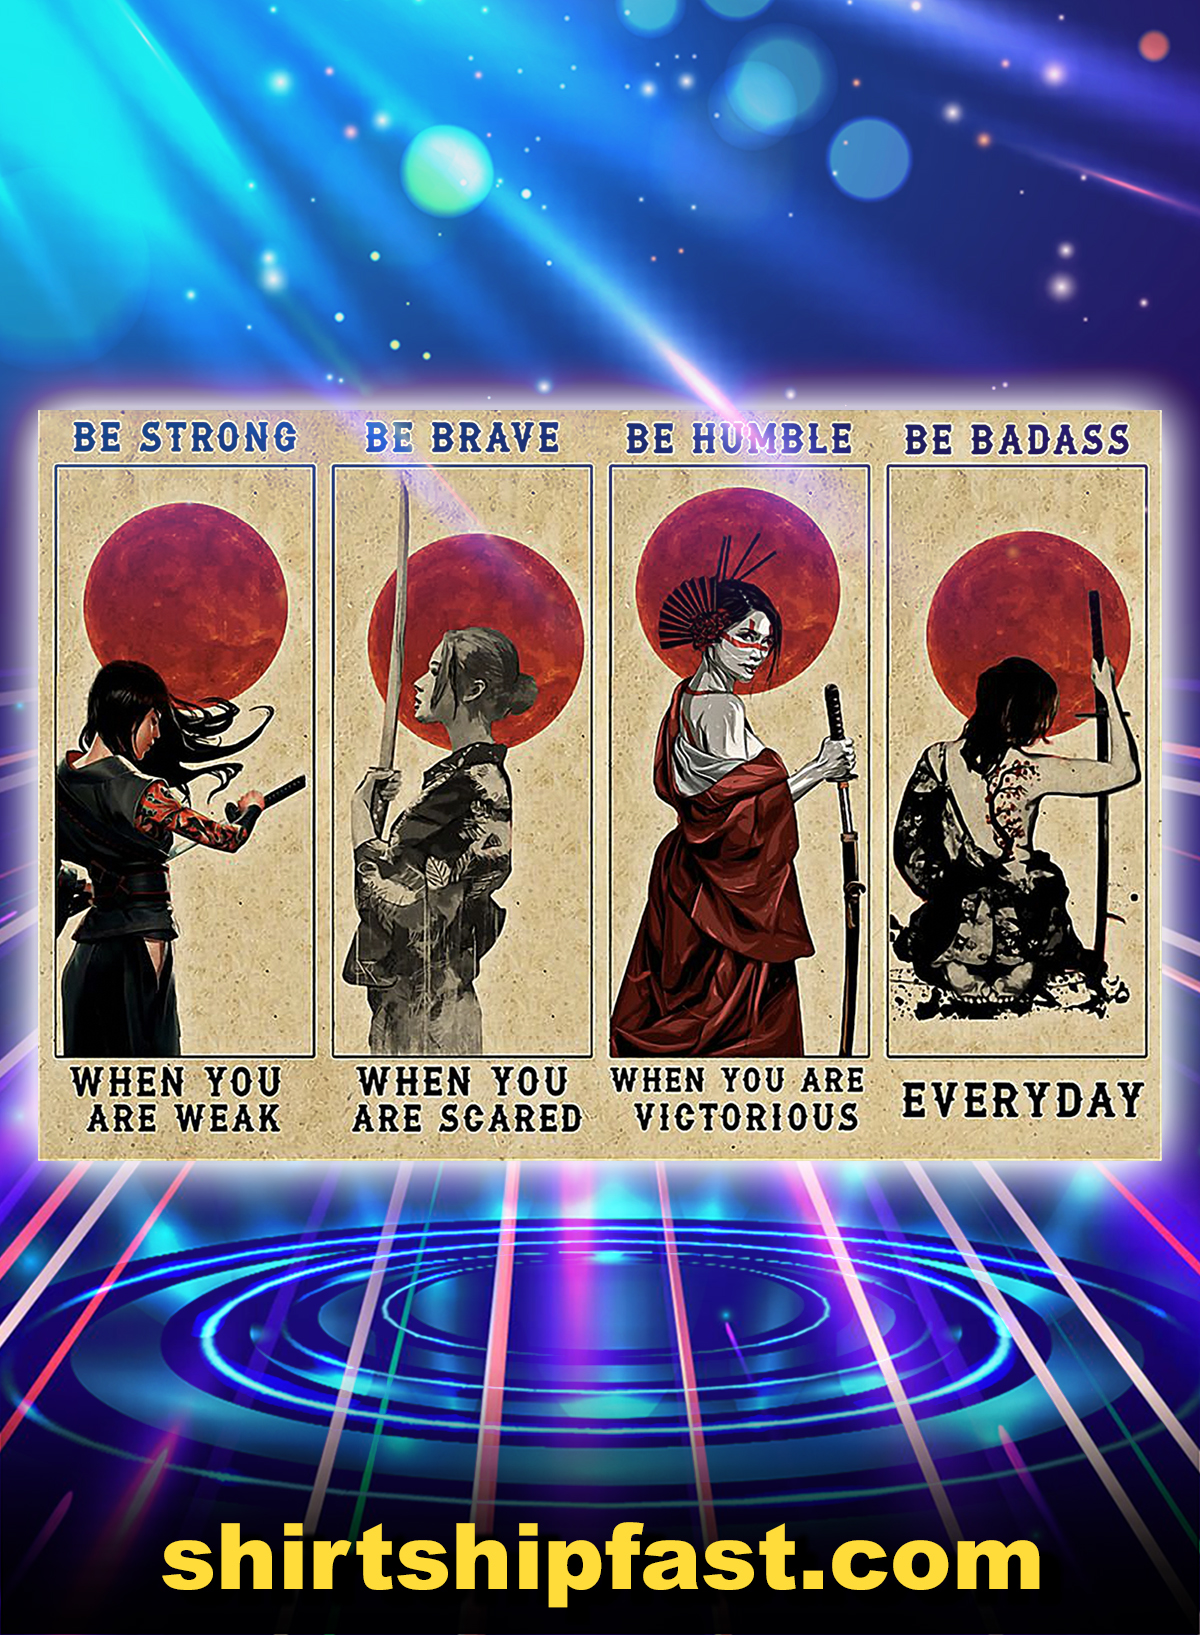 Samurai women be strong be brave be humble be badass poster